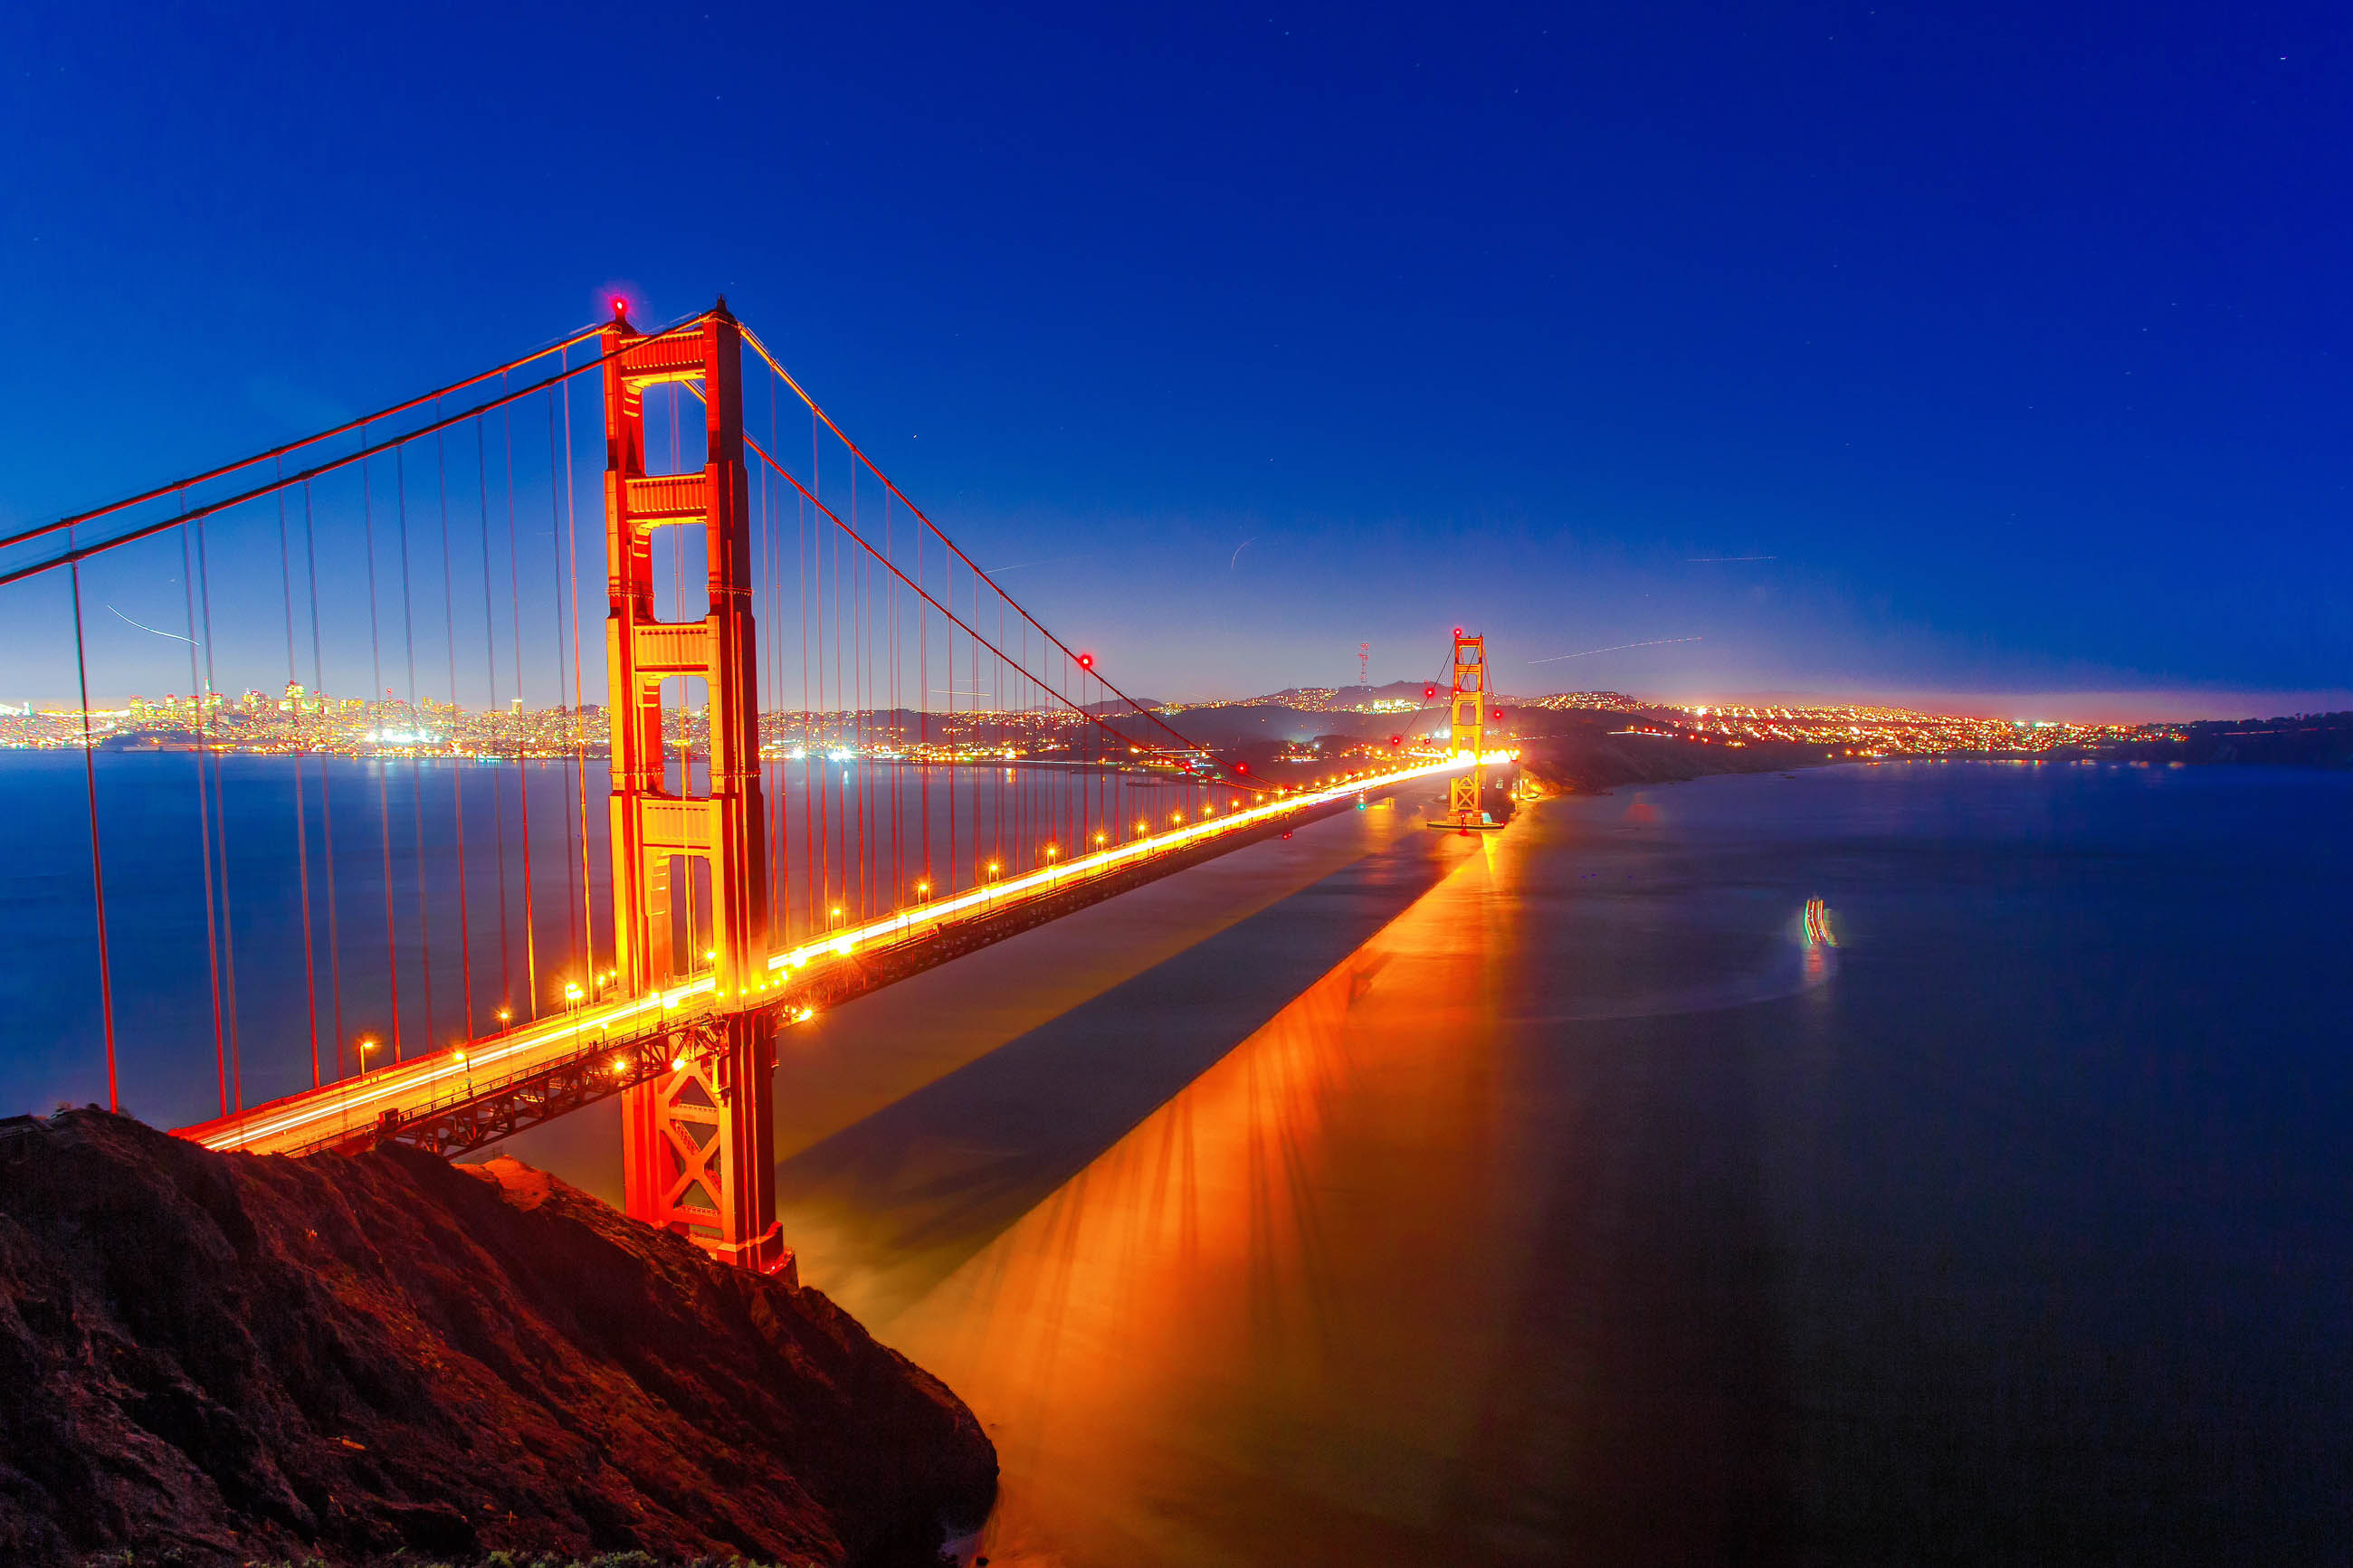 bilder golden gate bridge san francisco usa franks. Black Bedroom Furniture Sets. Home Design Ideas